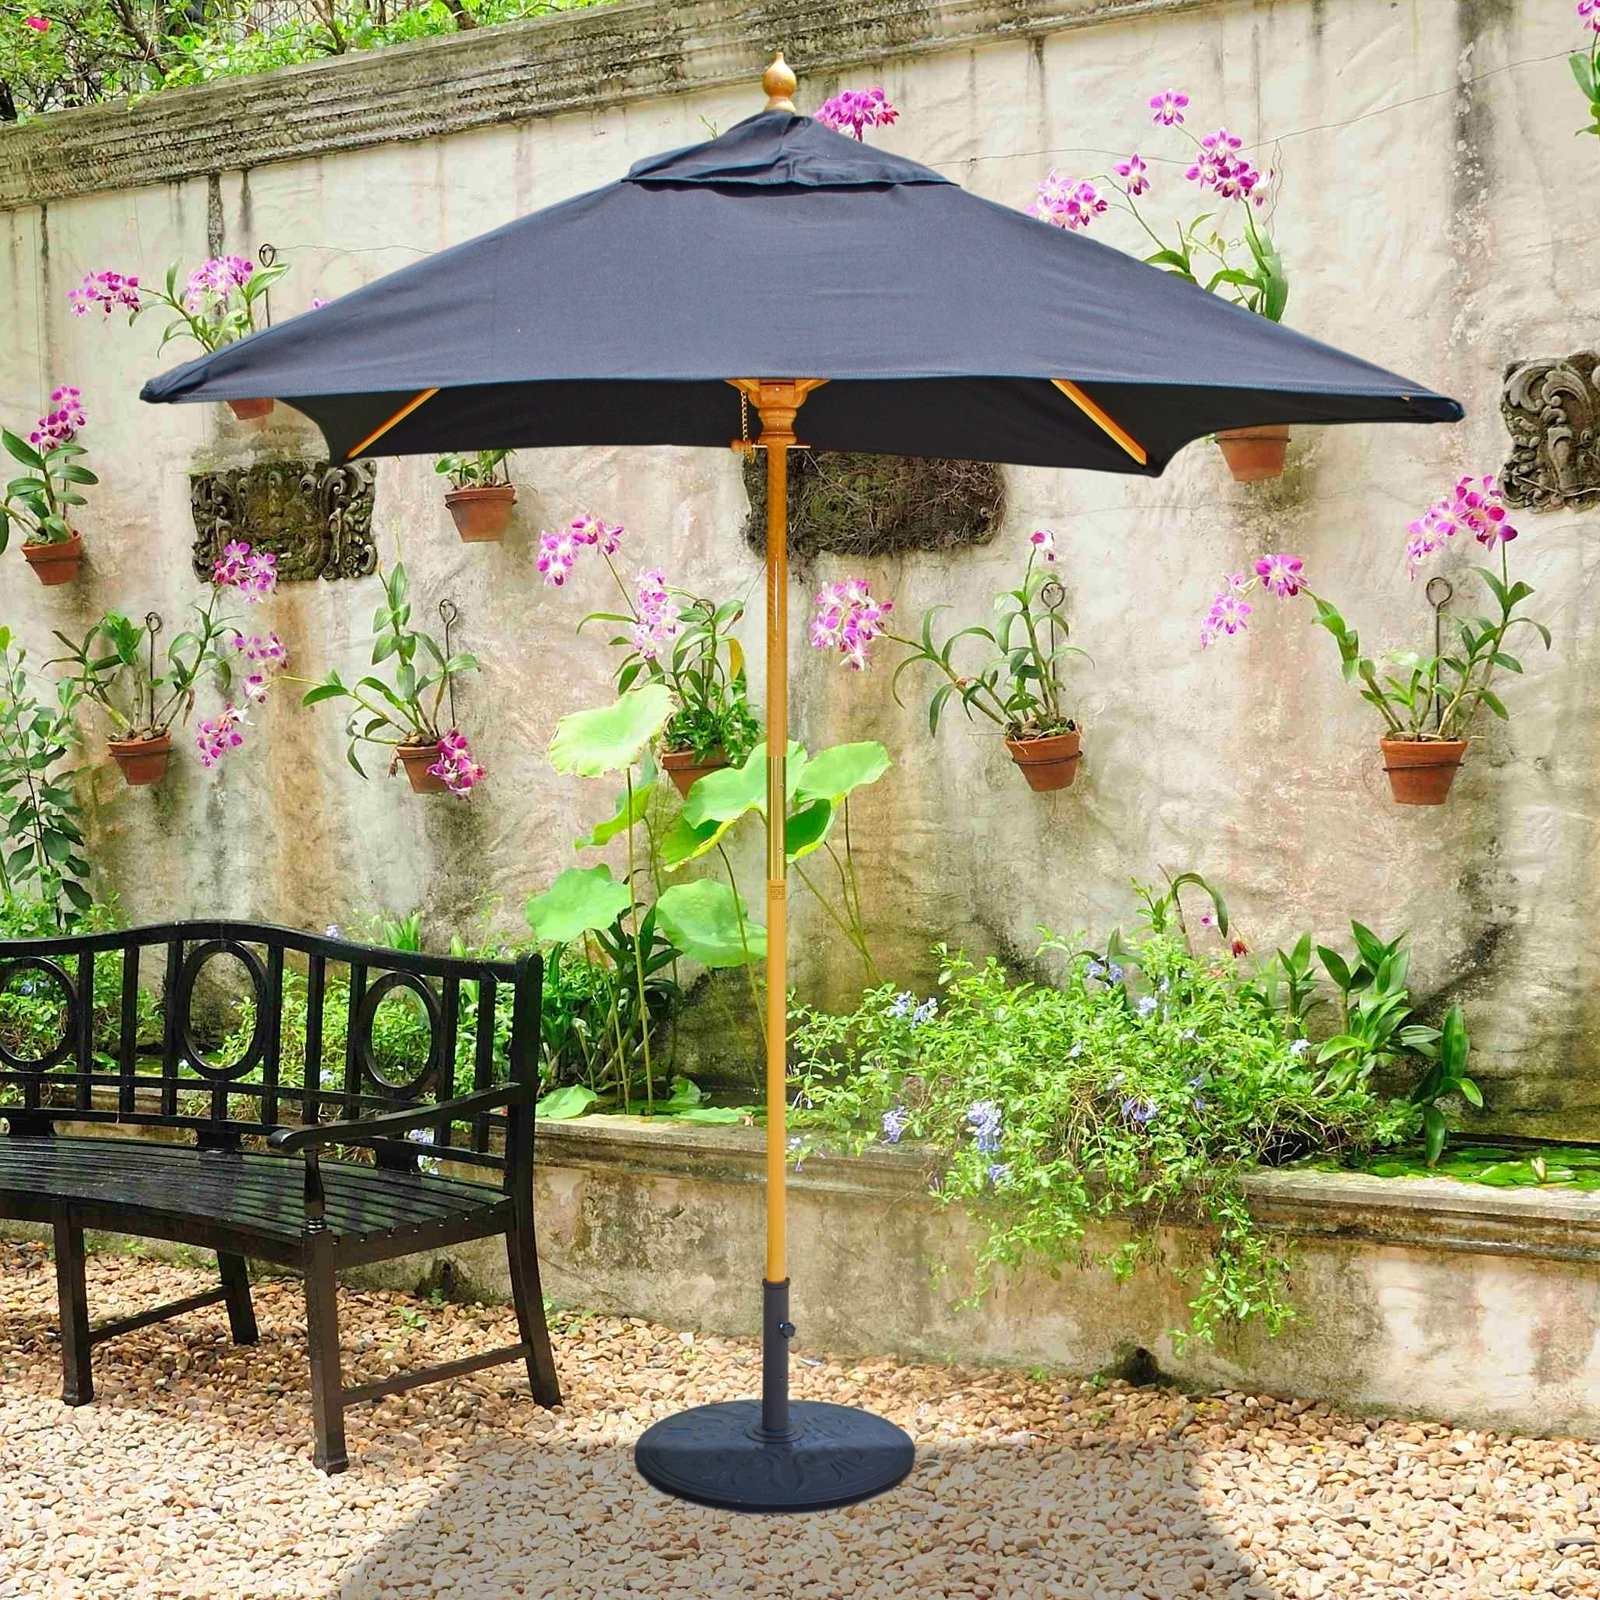 Galtech Sunbrella 6 X 6 Ft Wood Square Patio Umbrella Patio Within Recent Square Sunbrella Patio Umbrellas (View 9 of 20)